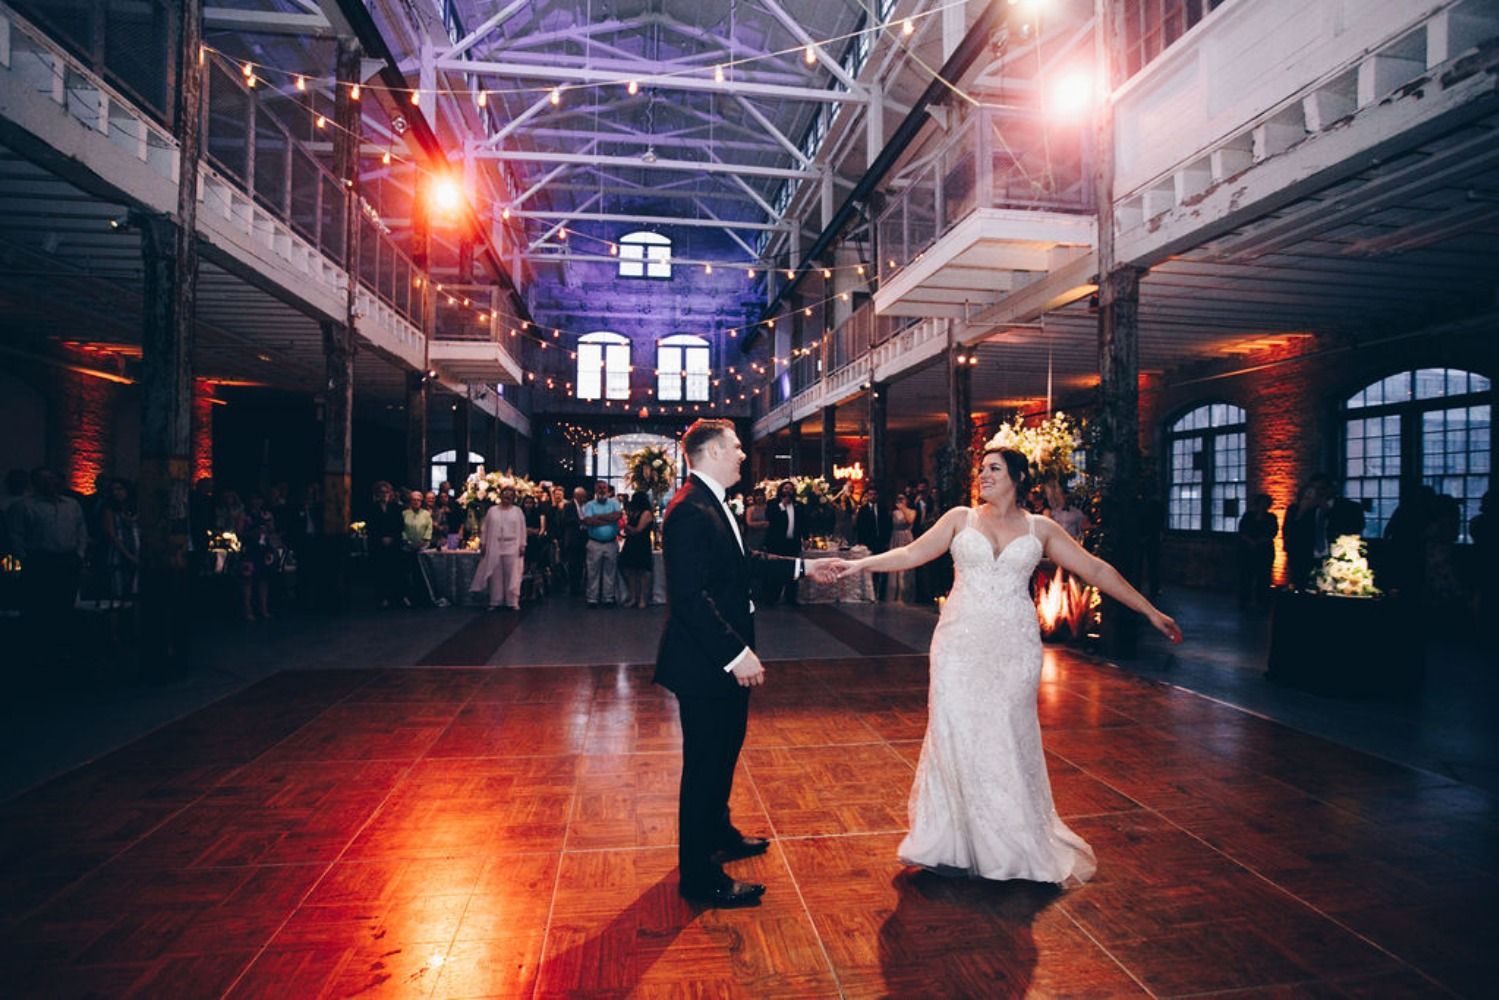 first wedding dance at Roebling Wire Works